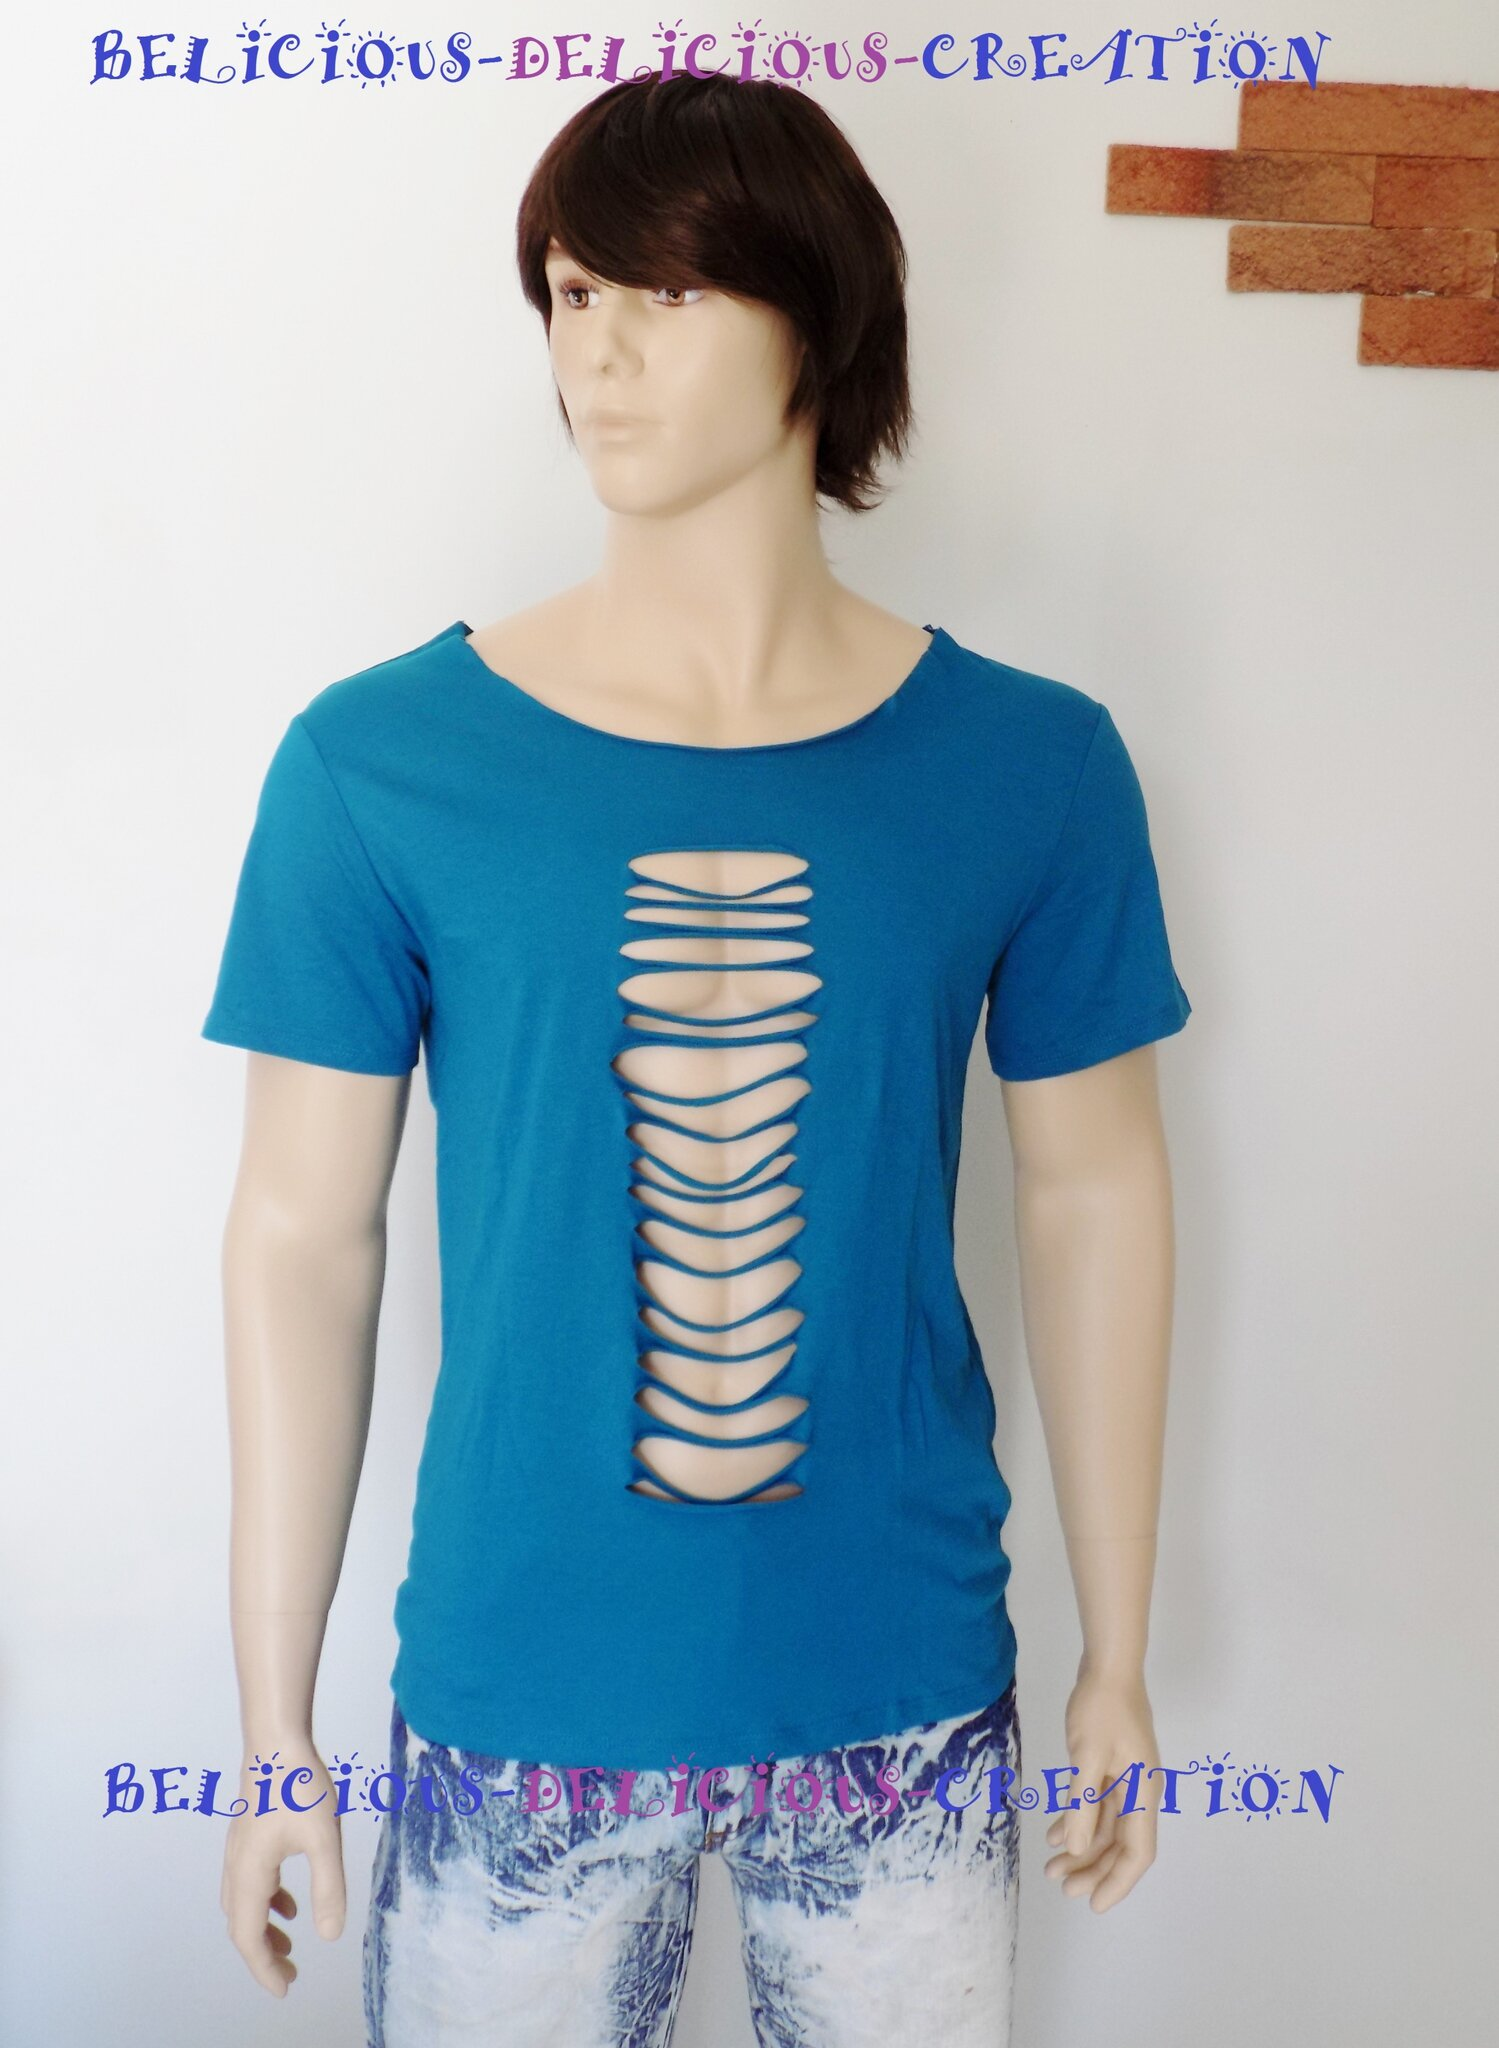 t-shirt for men blue slashed c